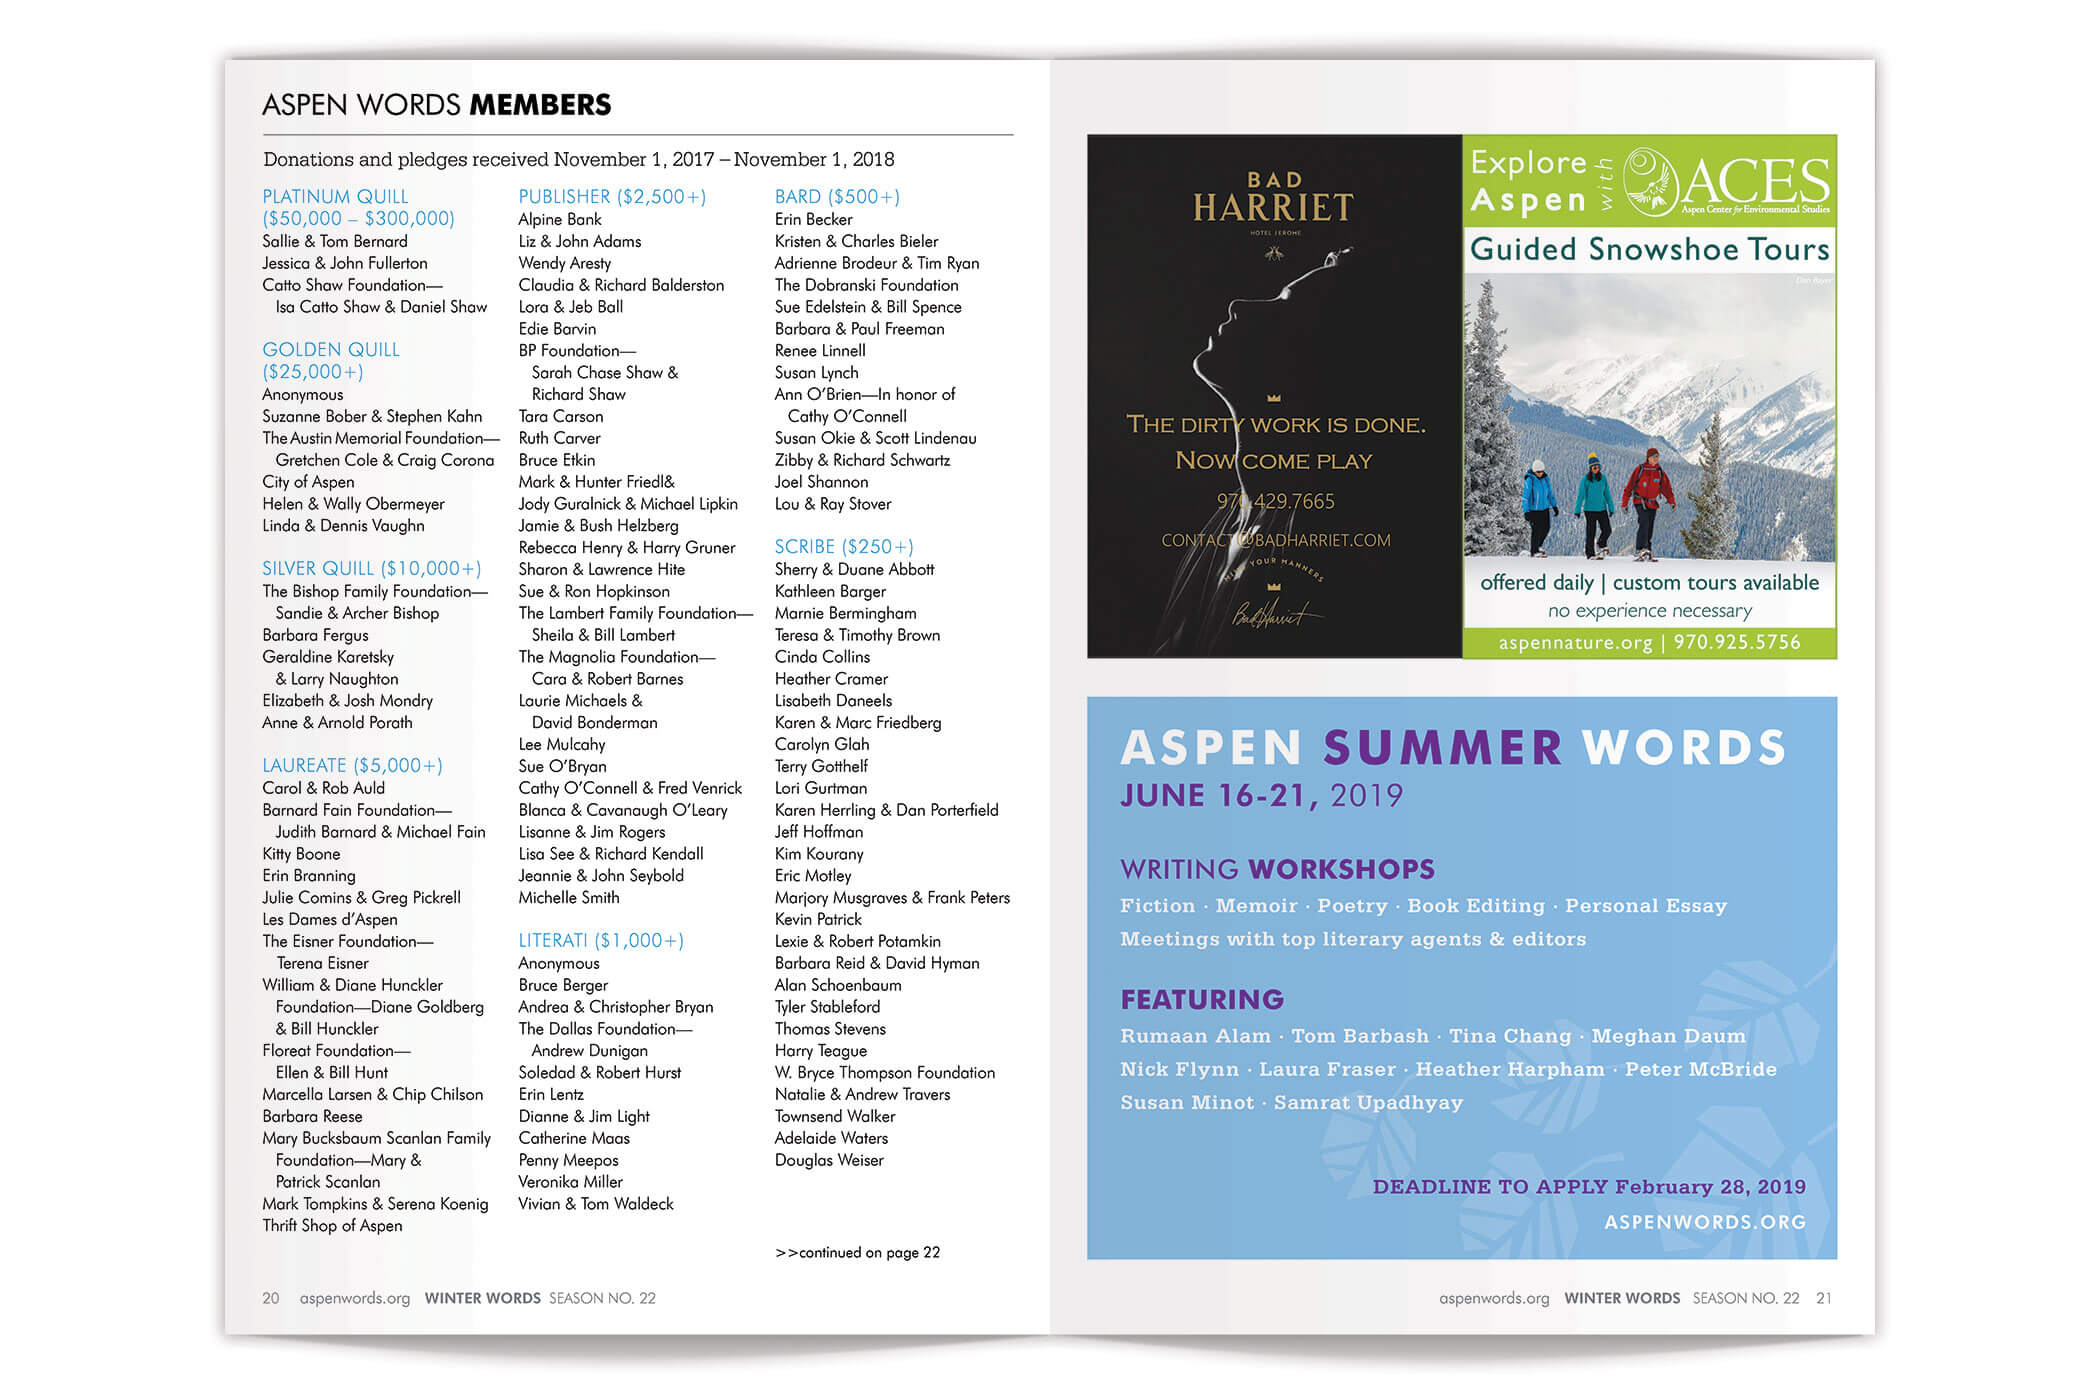 Aspen Words Winter Words Event Program Spread pages 20-21 | Nonprofit Event Program Design by The Qurious Effect.